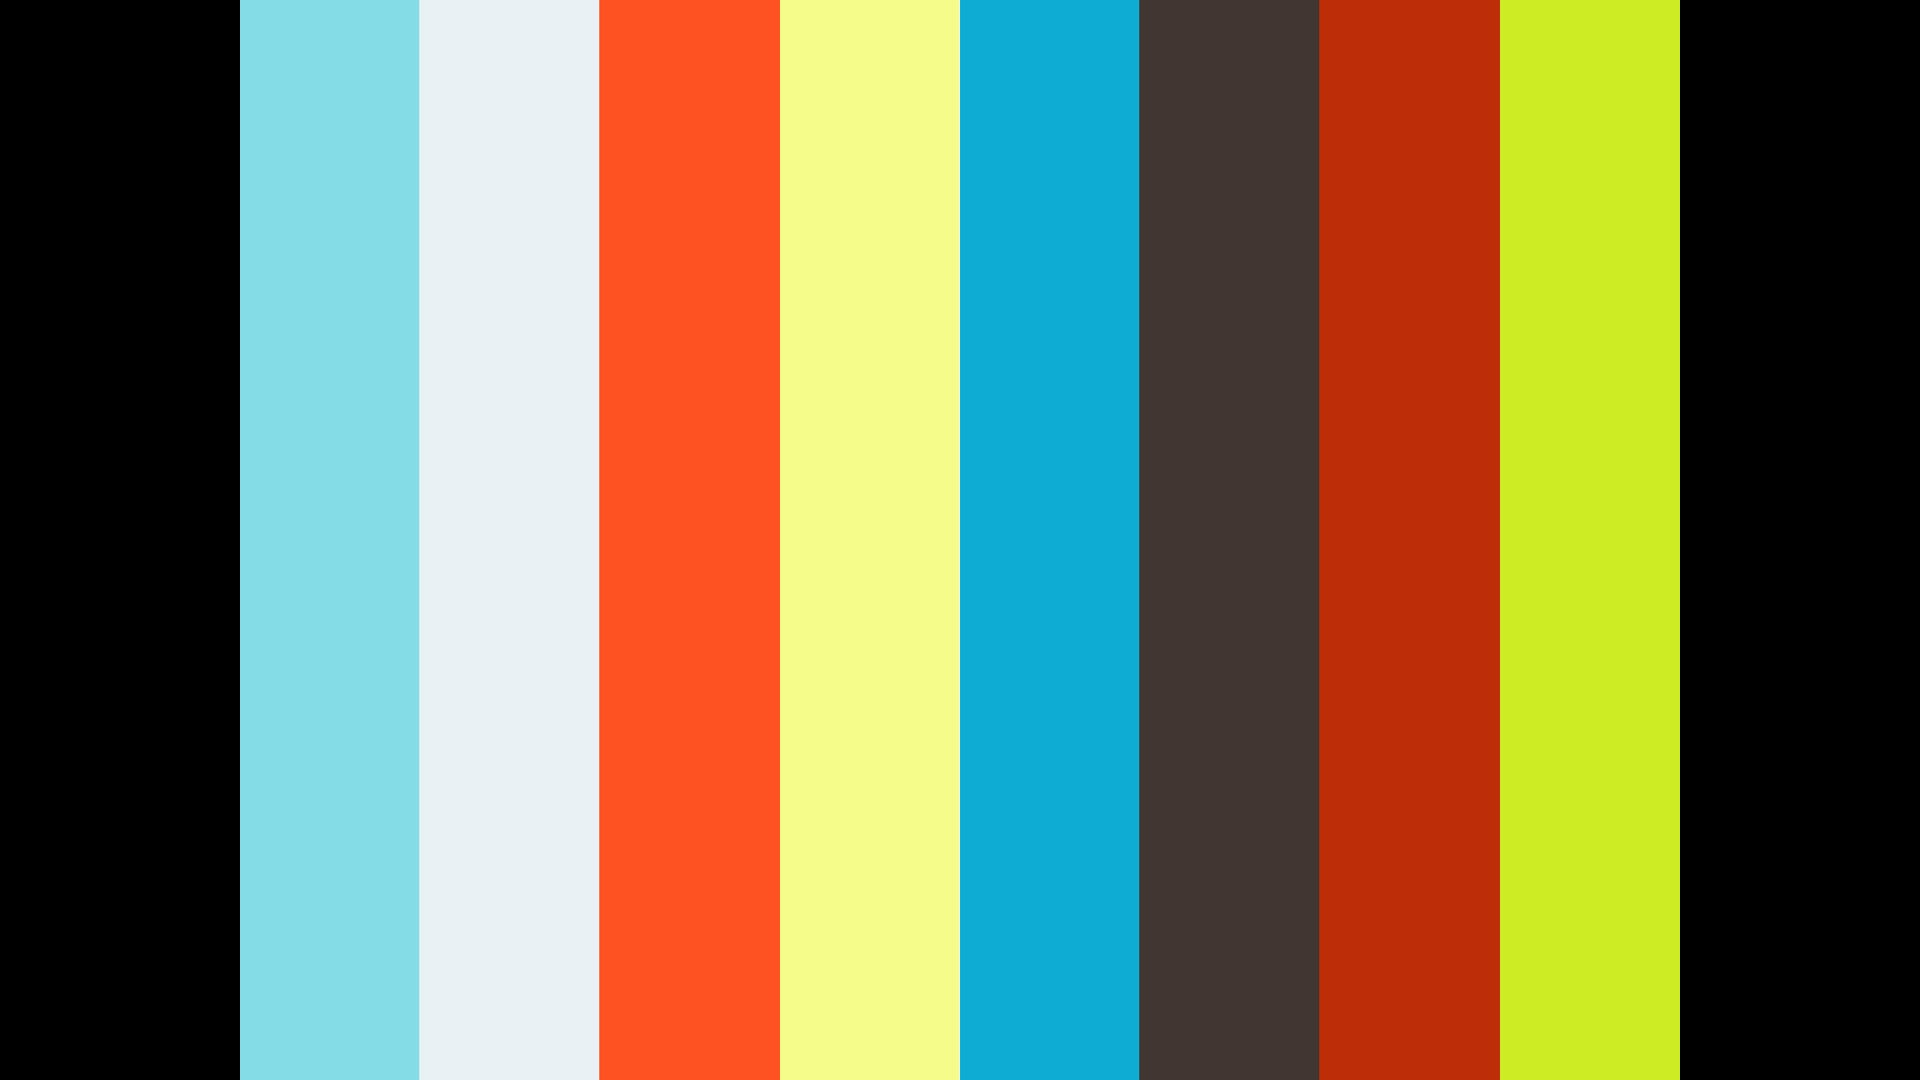 ​Stater Bros. Charities 10th Annual Dave Stockton Heroes Challenge 2017